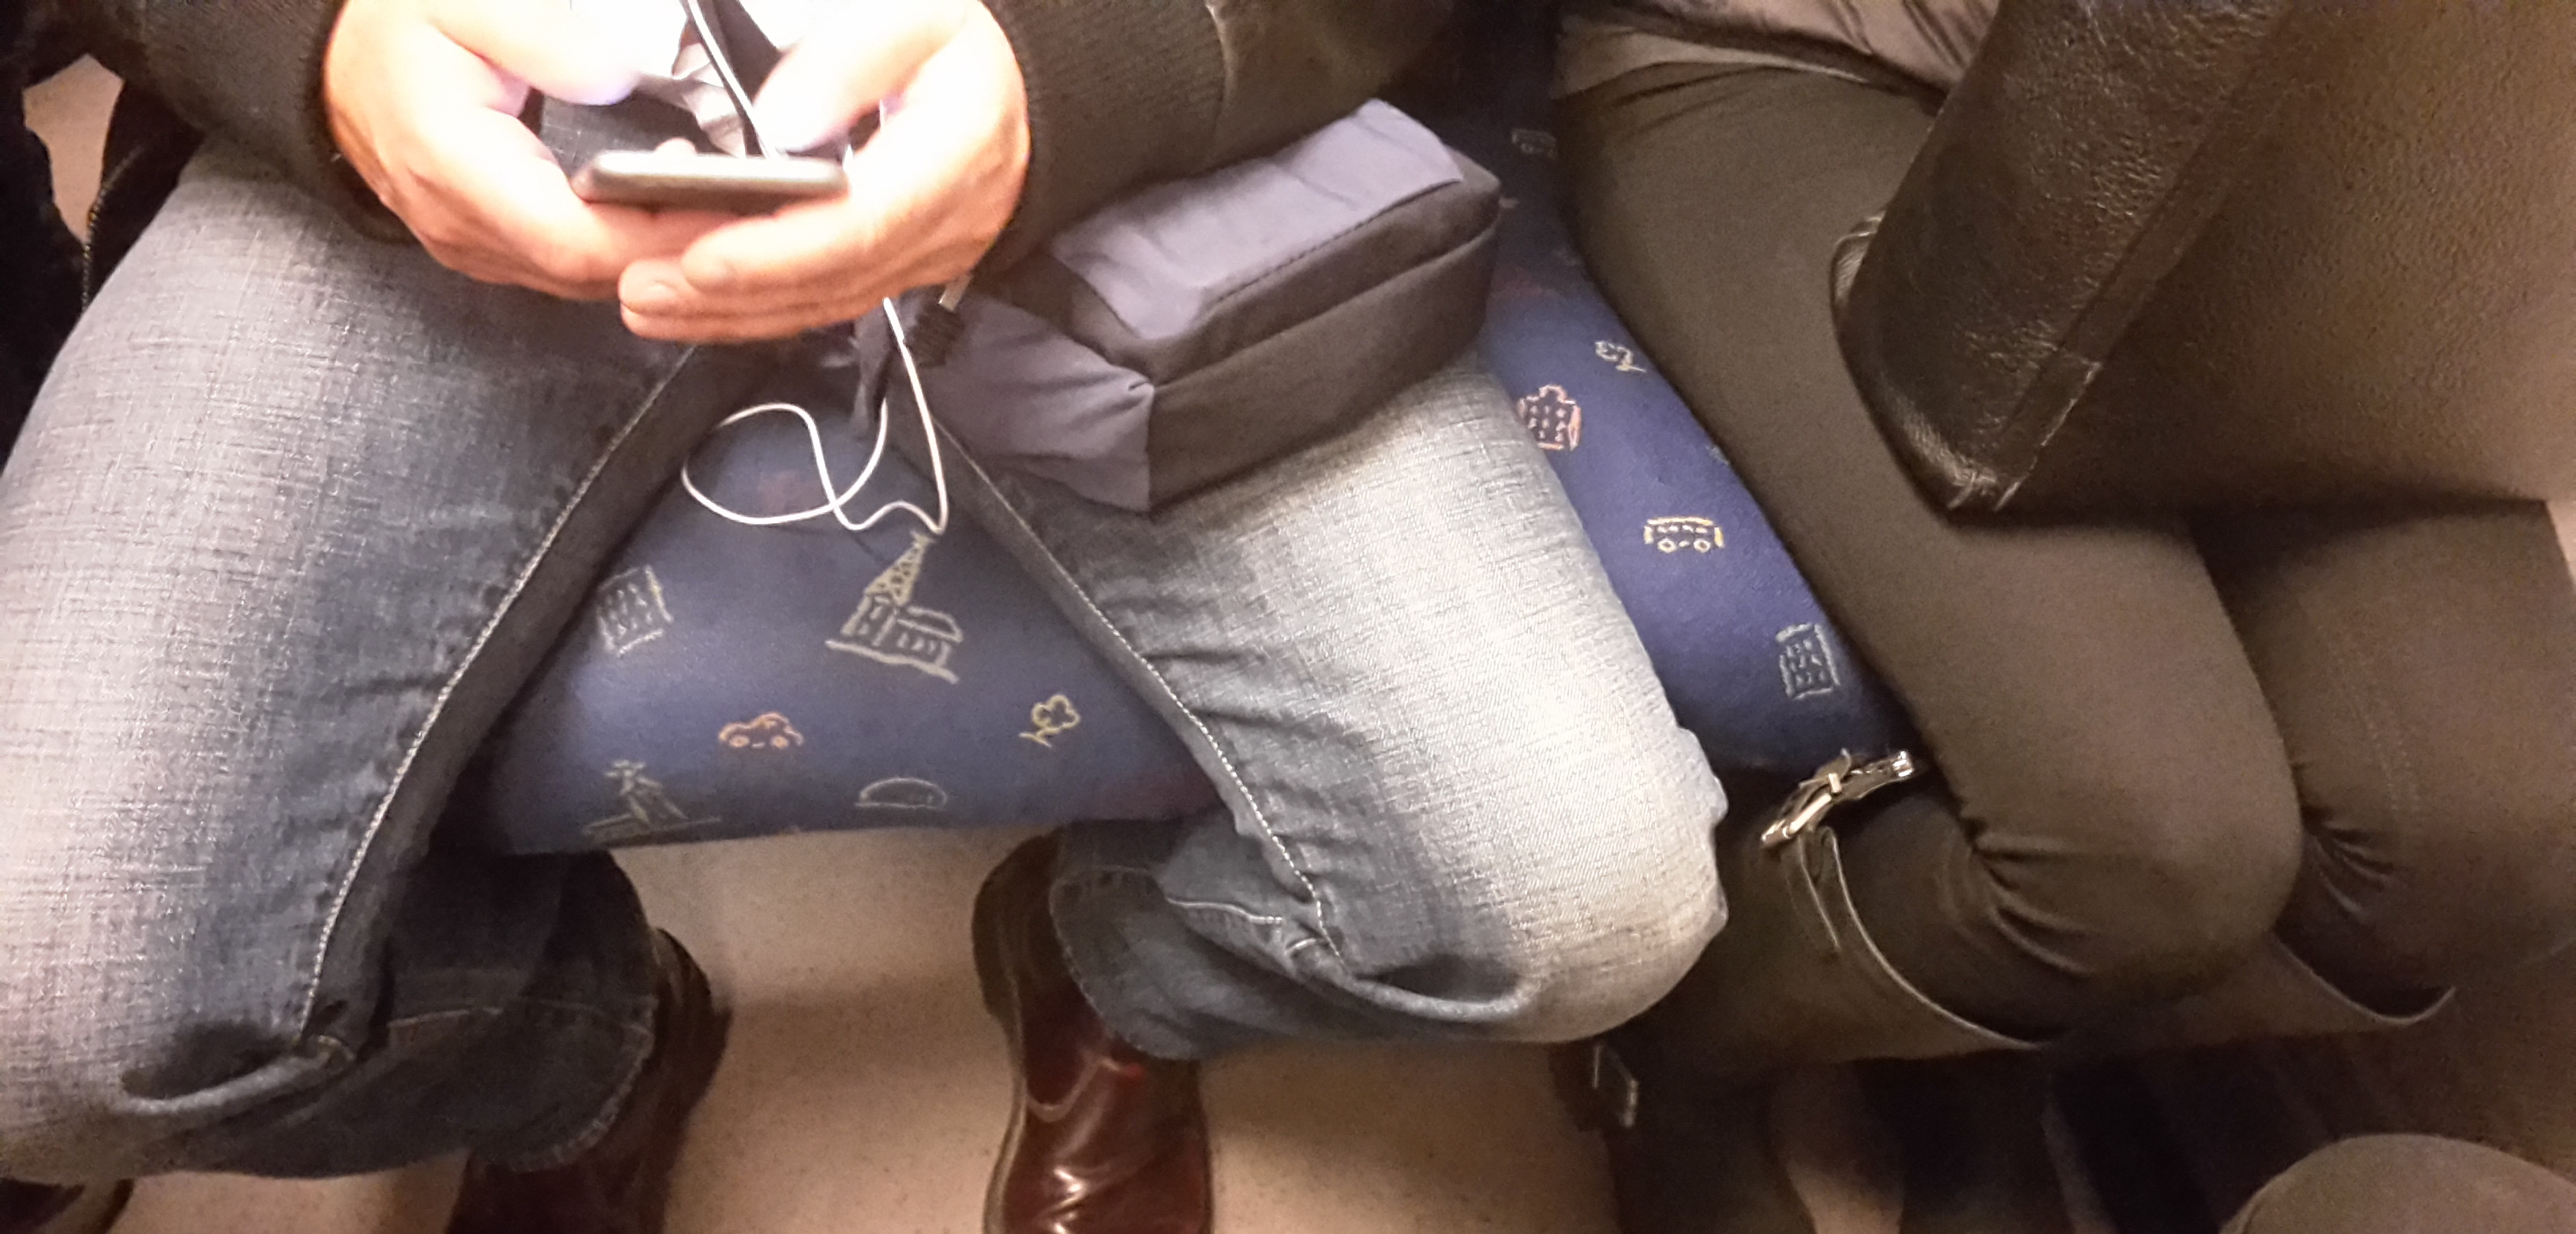 It's time to face the issue of manspreading